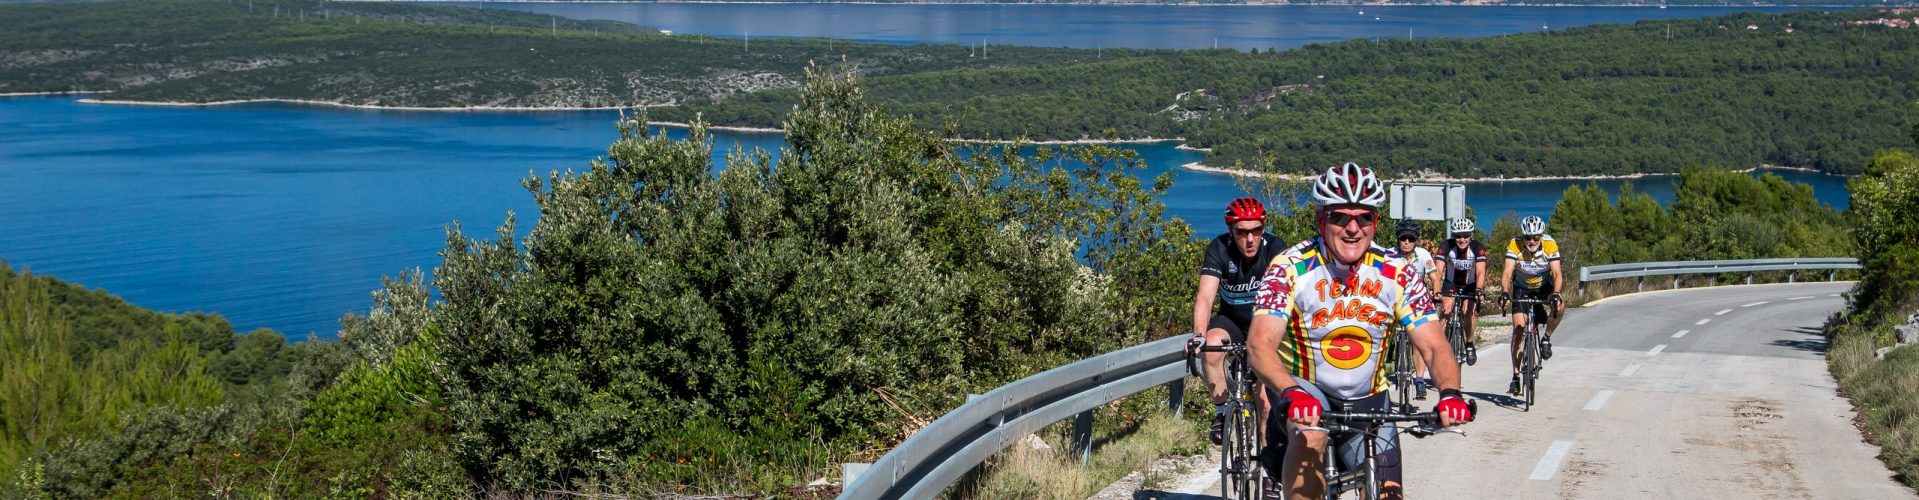 Self Guided Cycling in Croatia